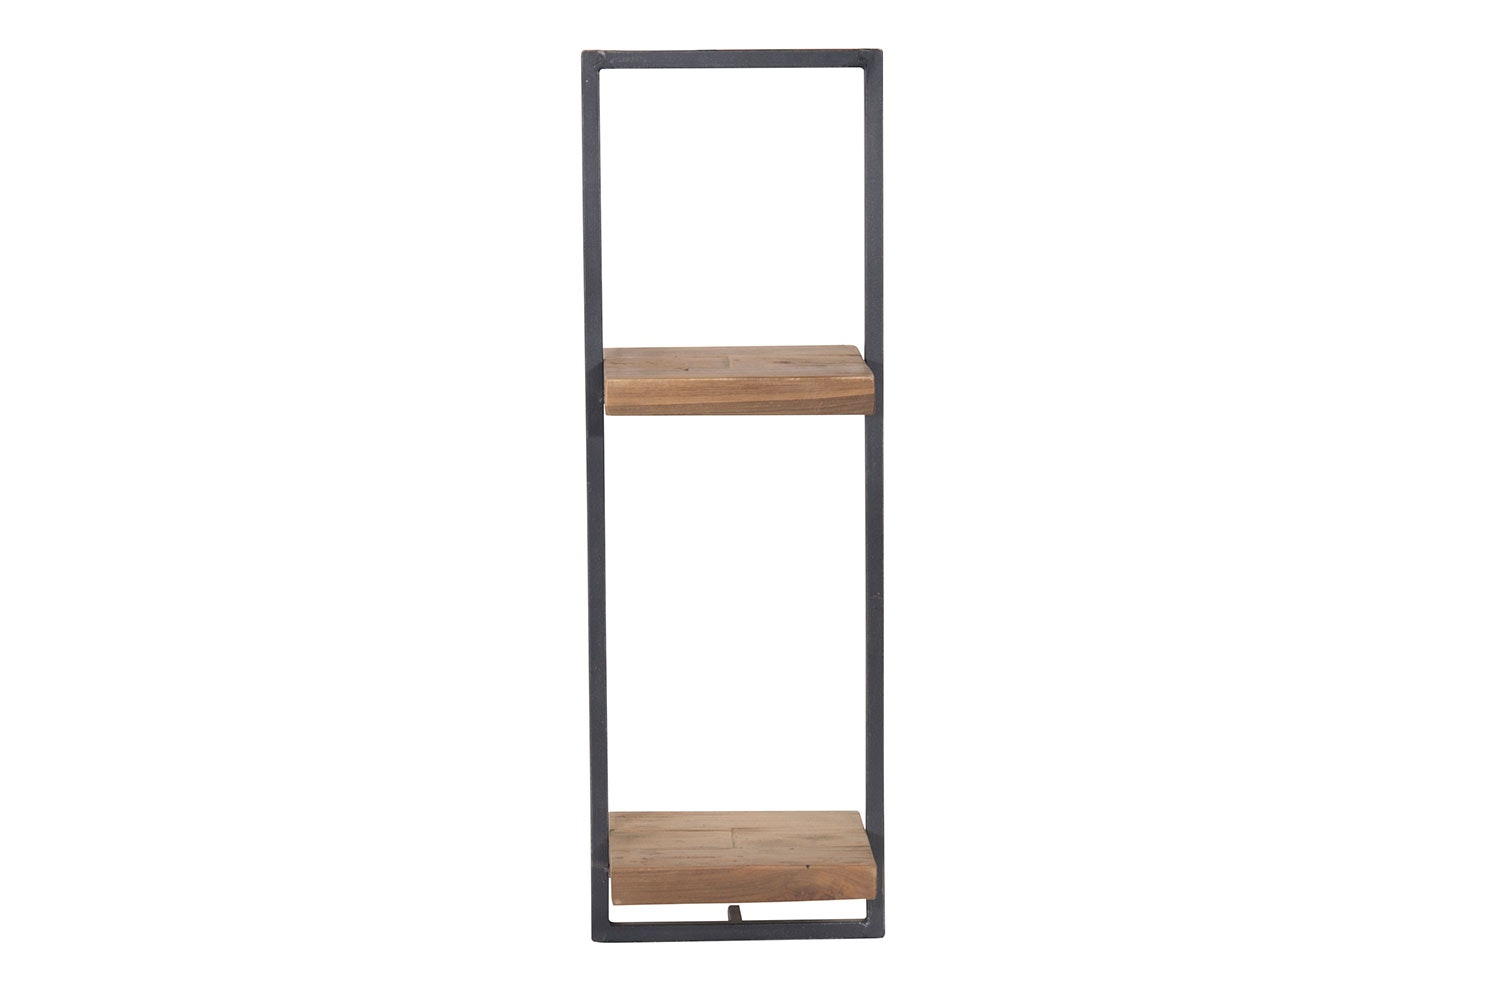 Shelfmate 25cm Matching Shelving Unit by D-Bohdi